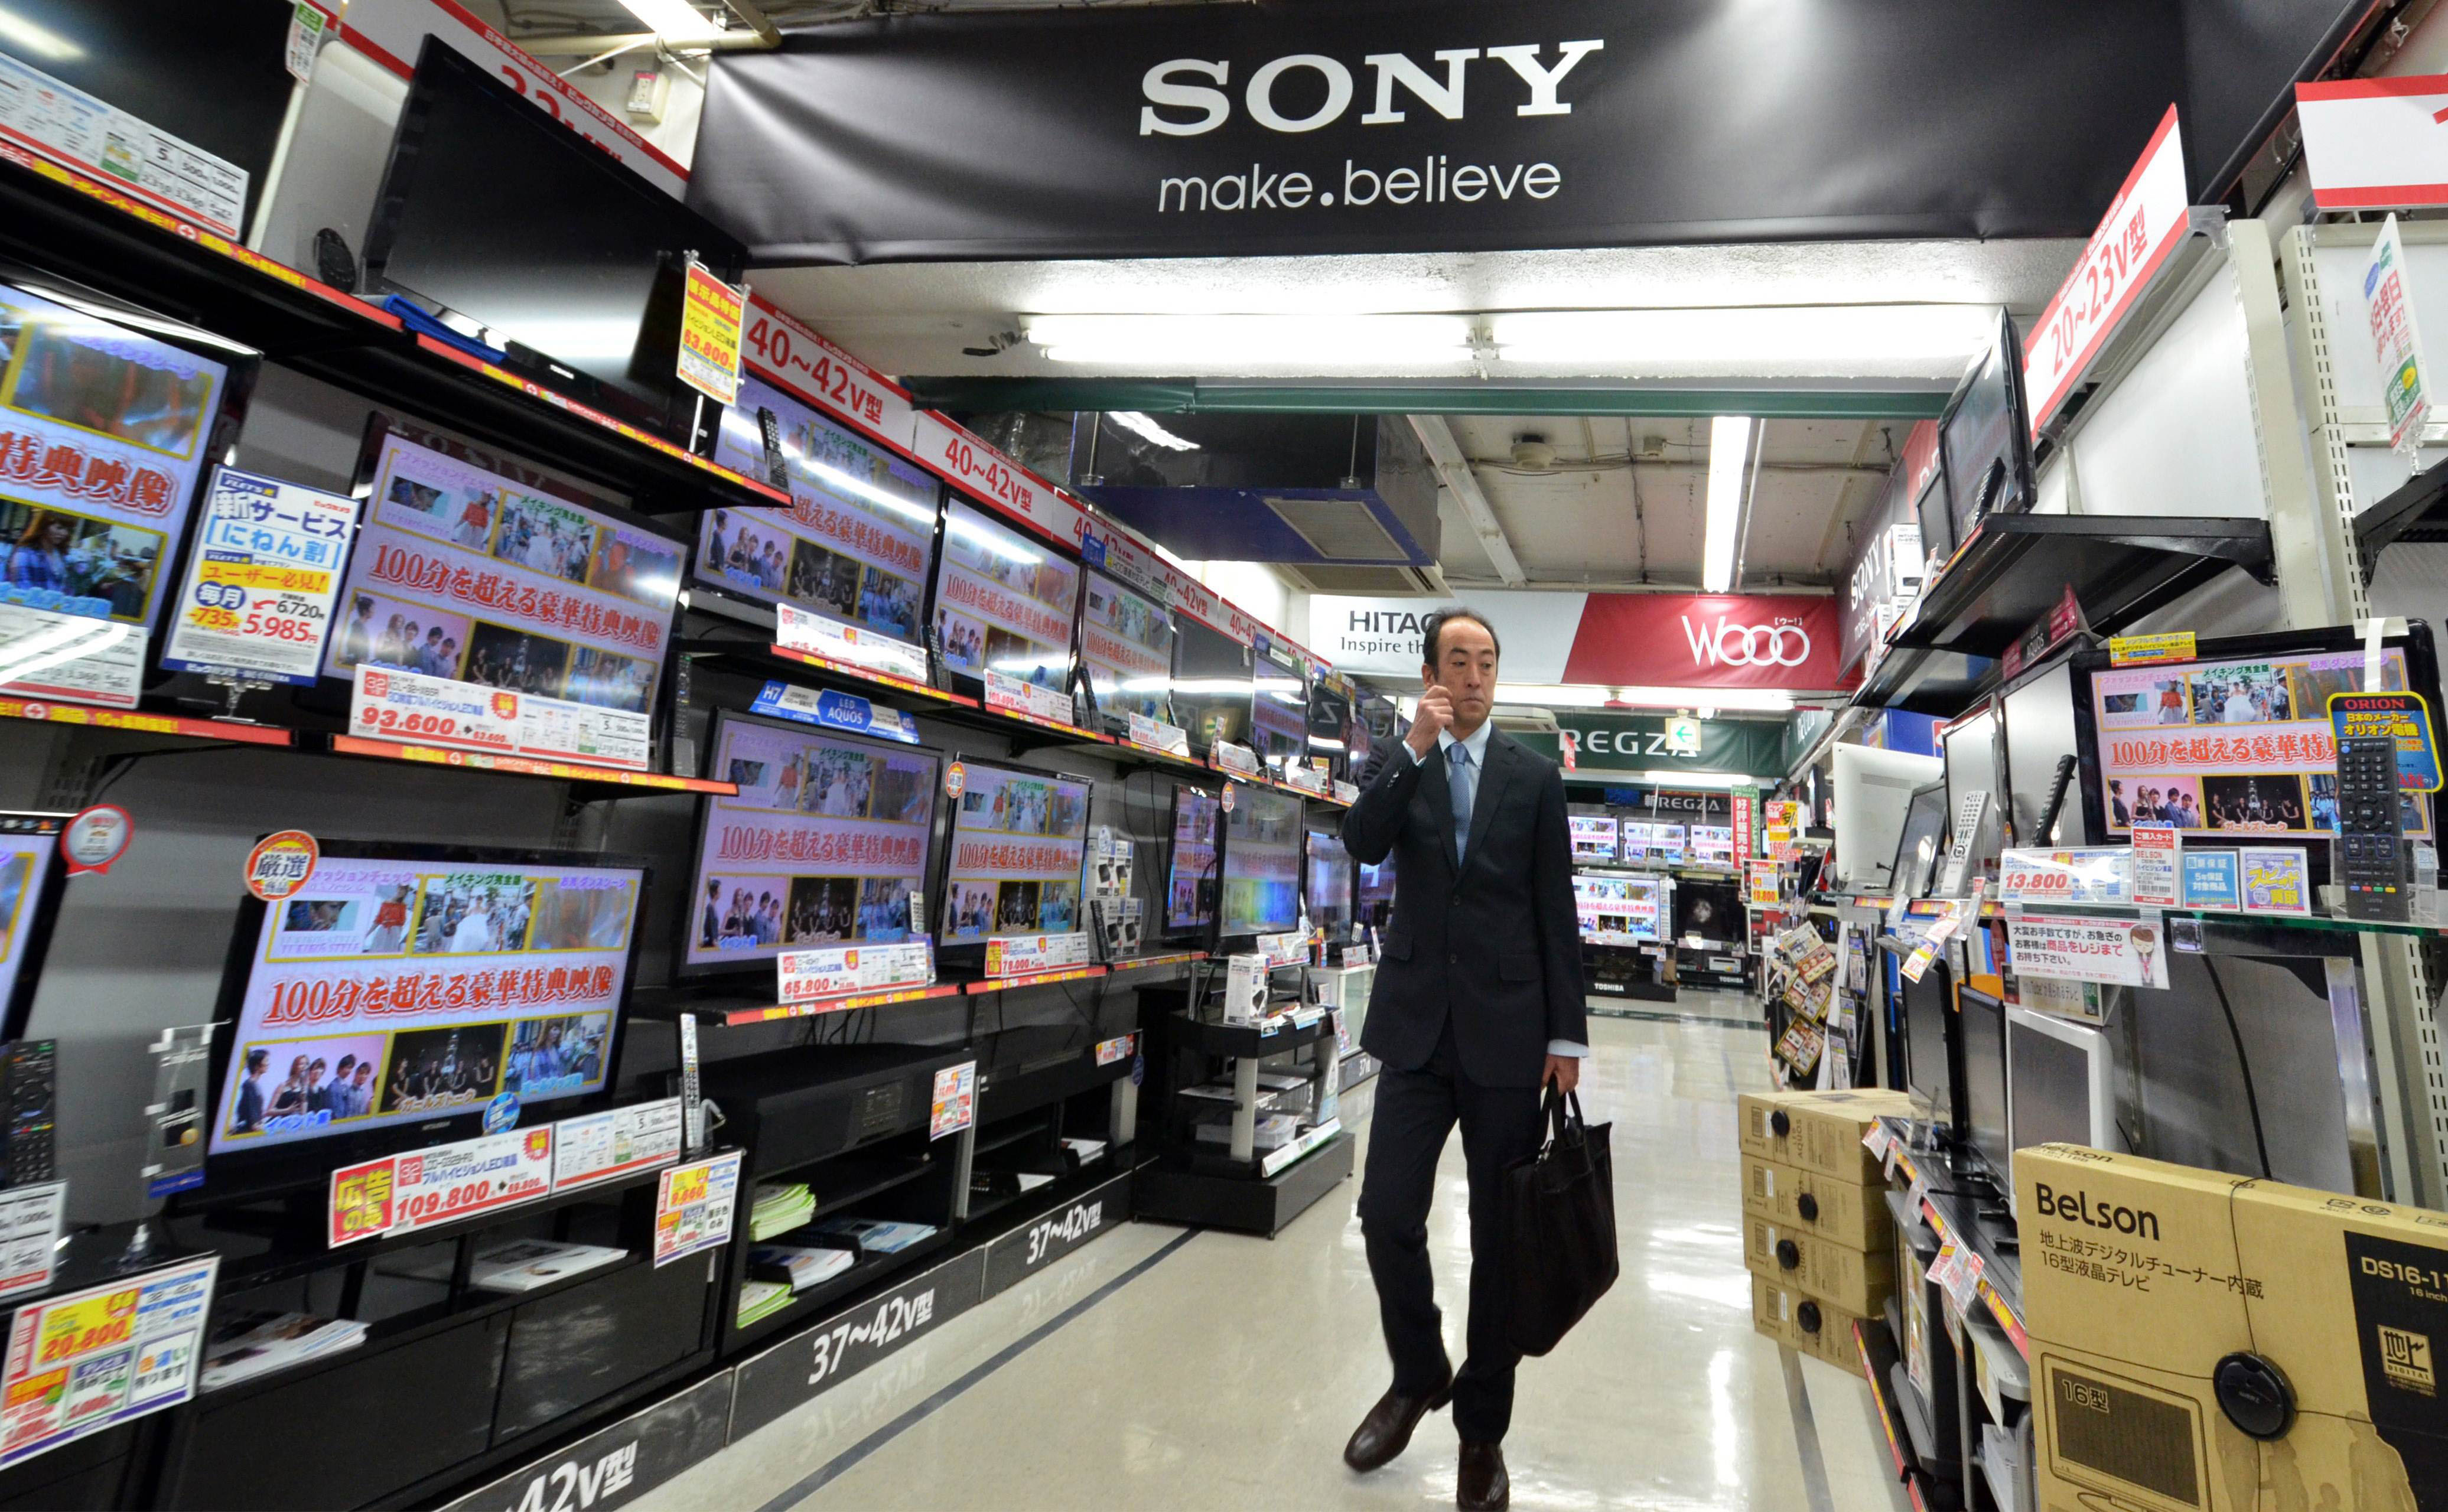 Screening process: A customer browses through Sony LCD TVs at an electronics shop in Tokyo on Thursday. | AFP-JIJI